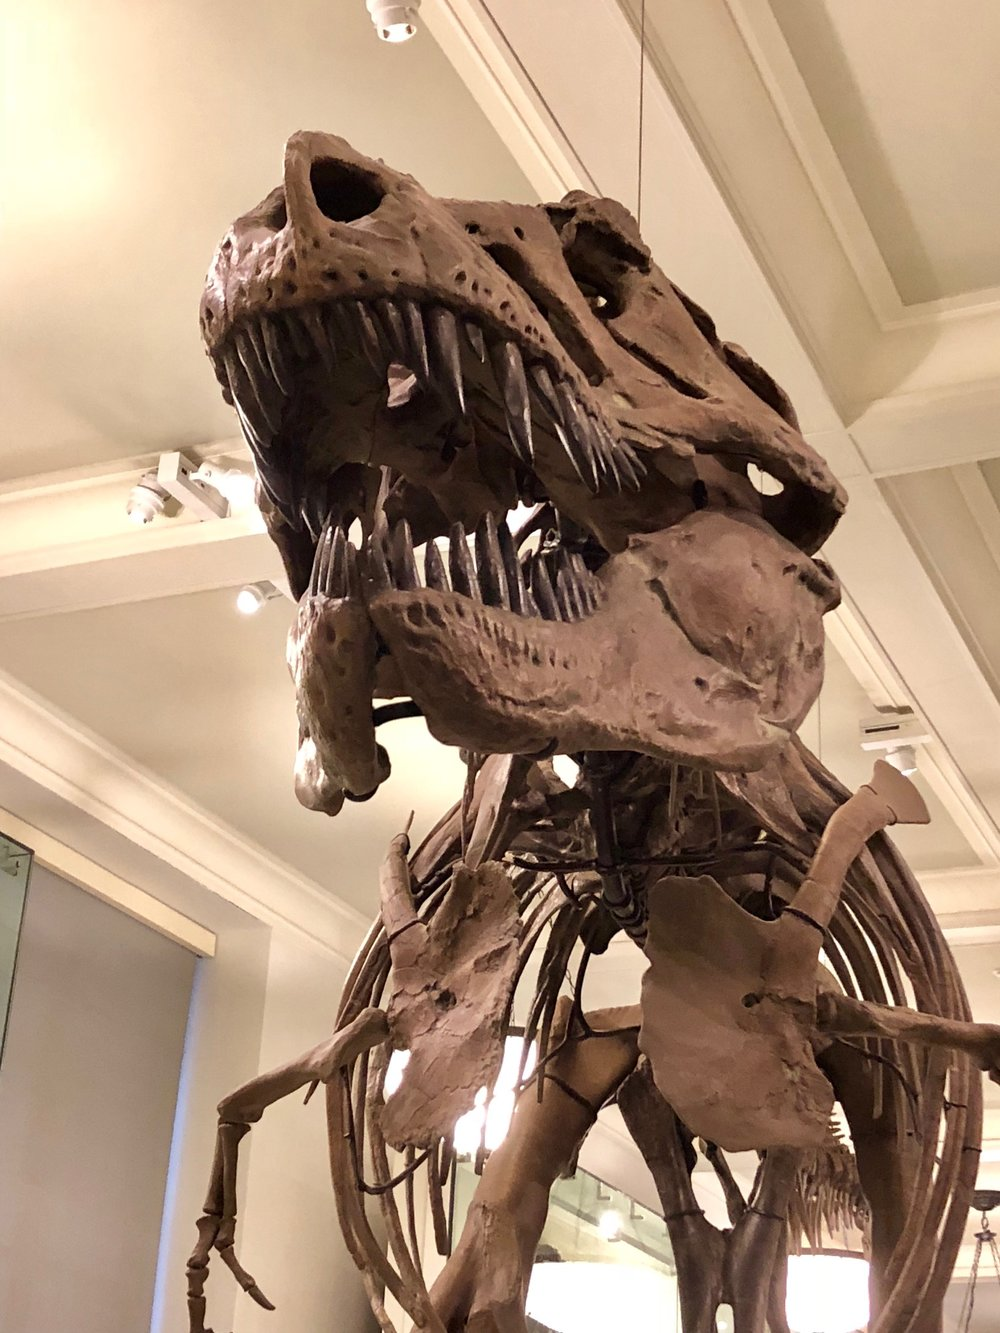 The most famous resident at the Museum of Natural history, the Tyrannosaurus Rex.